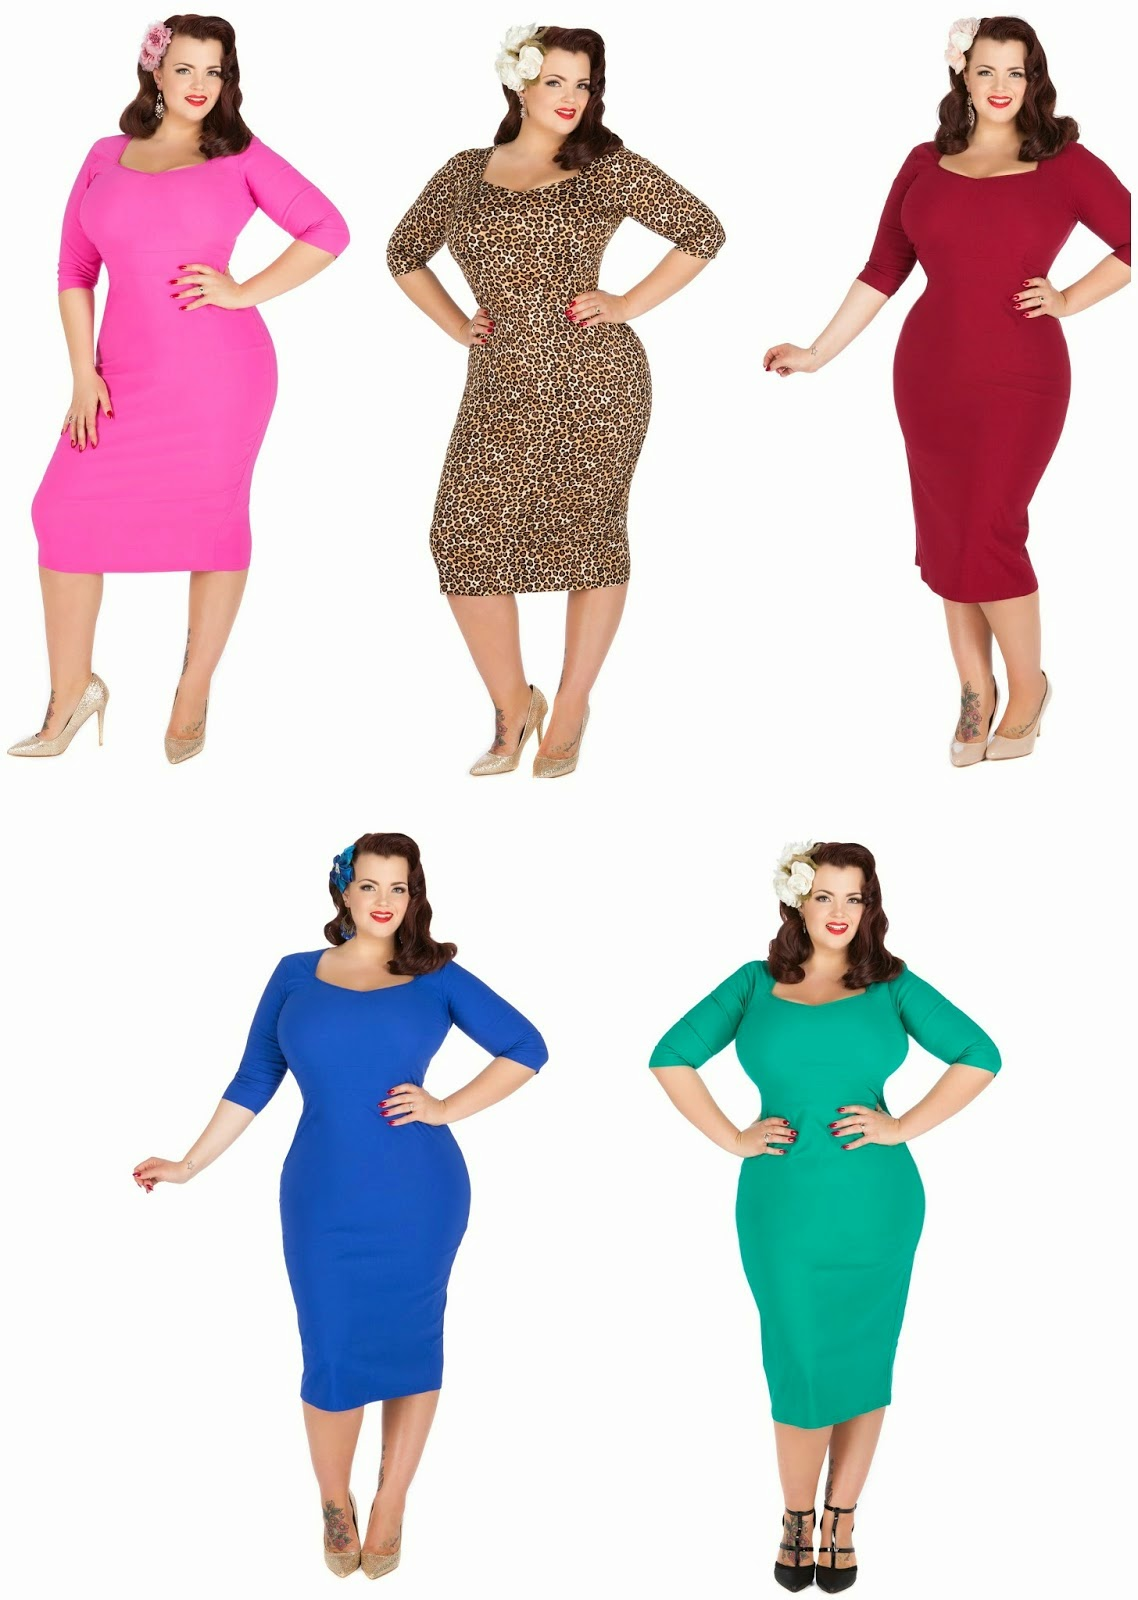 Lady Voluptous, Ruby Thunder, plus size